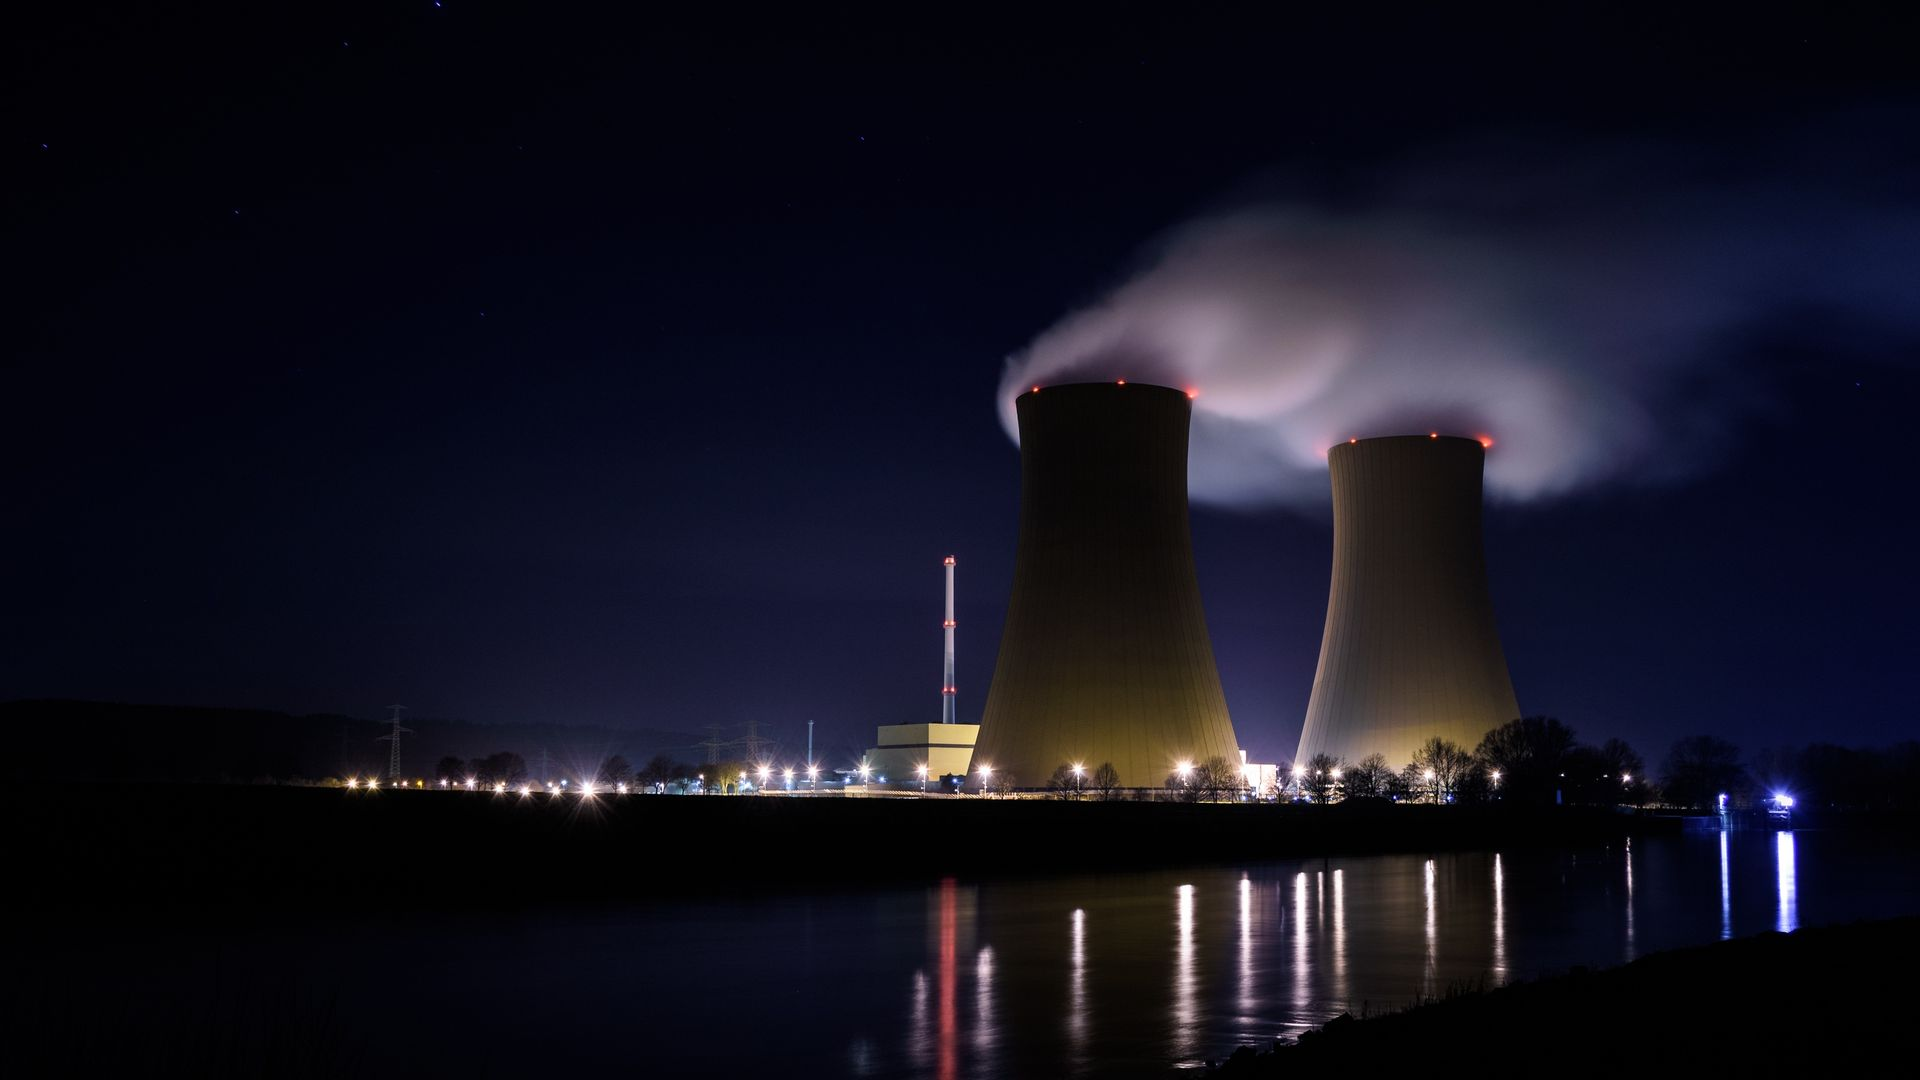 Logging the Internet of Things - Connected power plants demand a new paradigm